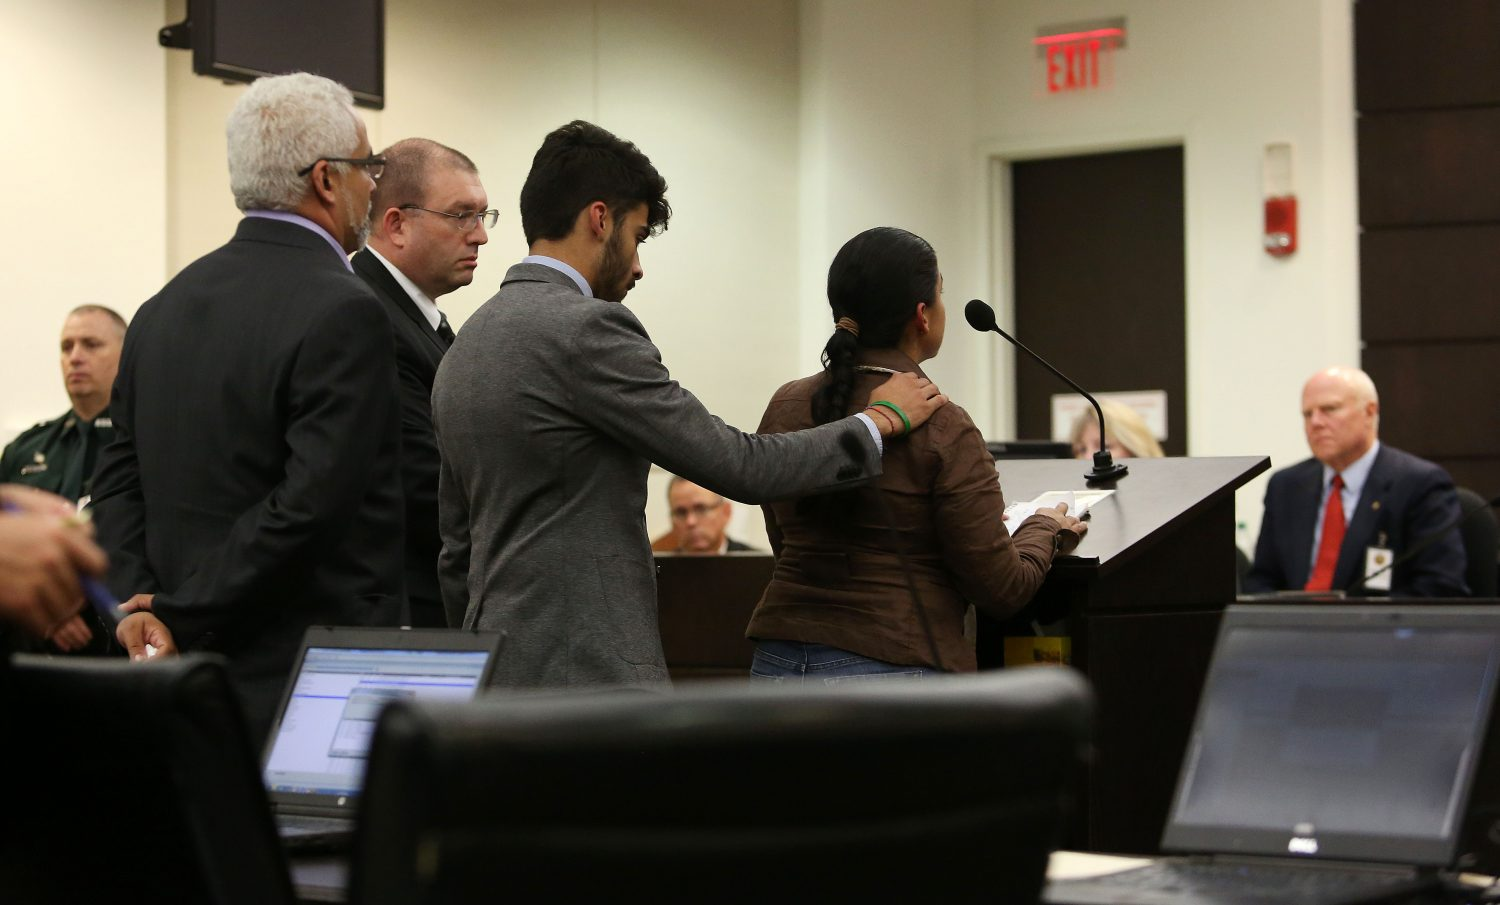 Alex Aguilar comforts his mother Claudia as she speaks to Circuit Court Judge James Colaw before Pedro Bravo's sentencing for the first degree murder of her son Christian in courtroom 1B of the Alachua County Criminal Justice Center Friday, August 15, 2014.  At left are Christian's father Carlos and lead prosecutor Brian Kramer.  (Doug Finger/The Gainesville Sun/Pool)